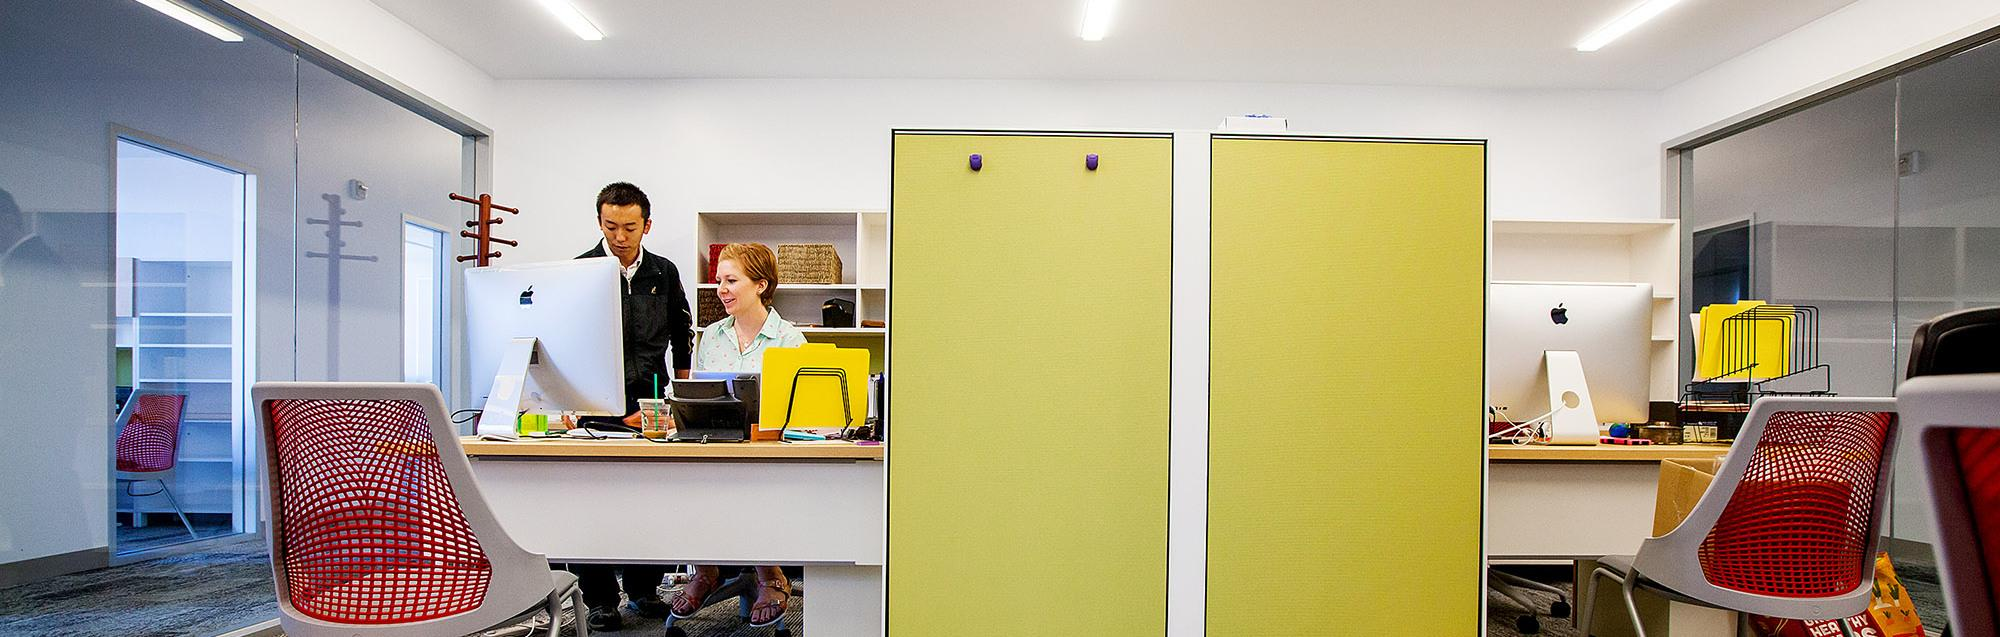 ENR2 has an intentional lightness, which is meant to encourage employee wellness and productivity.